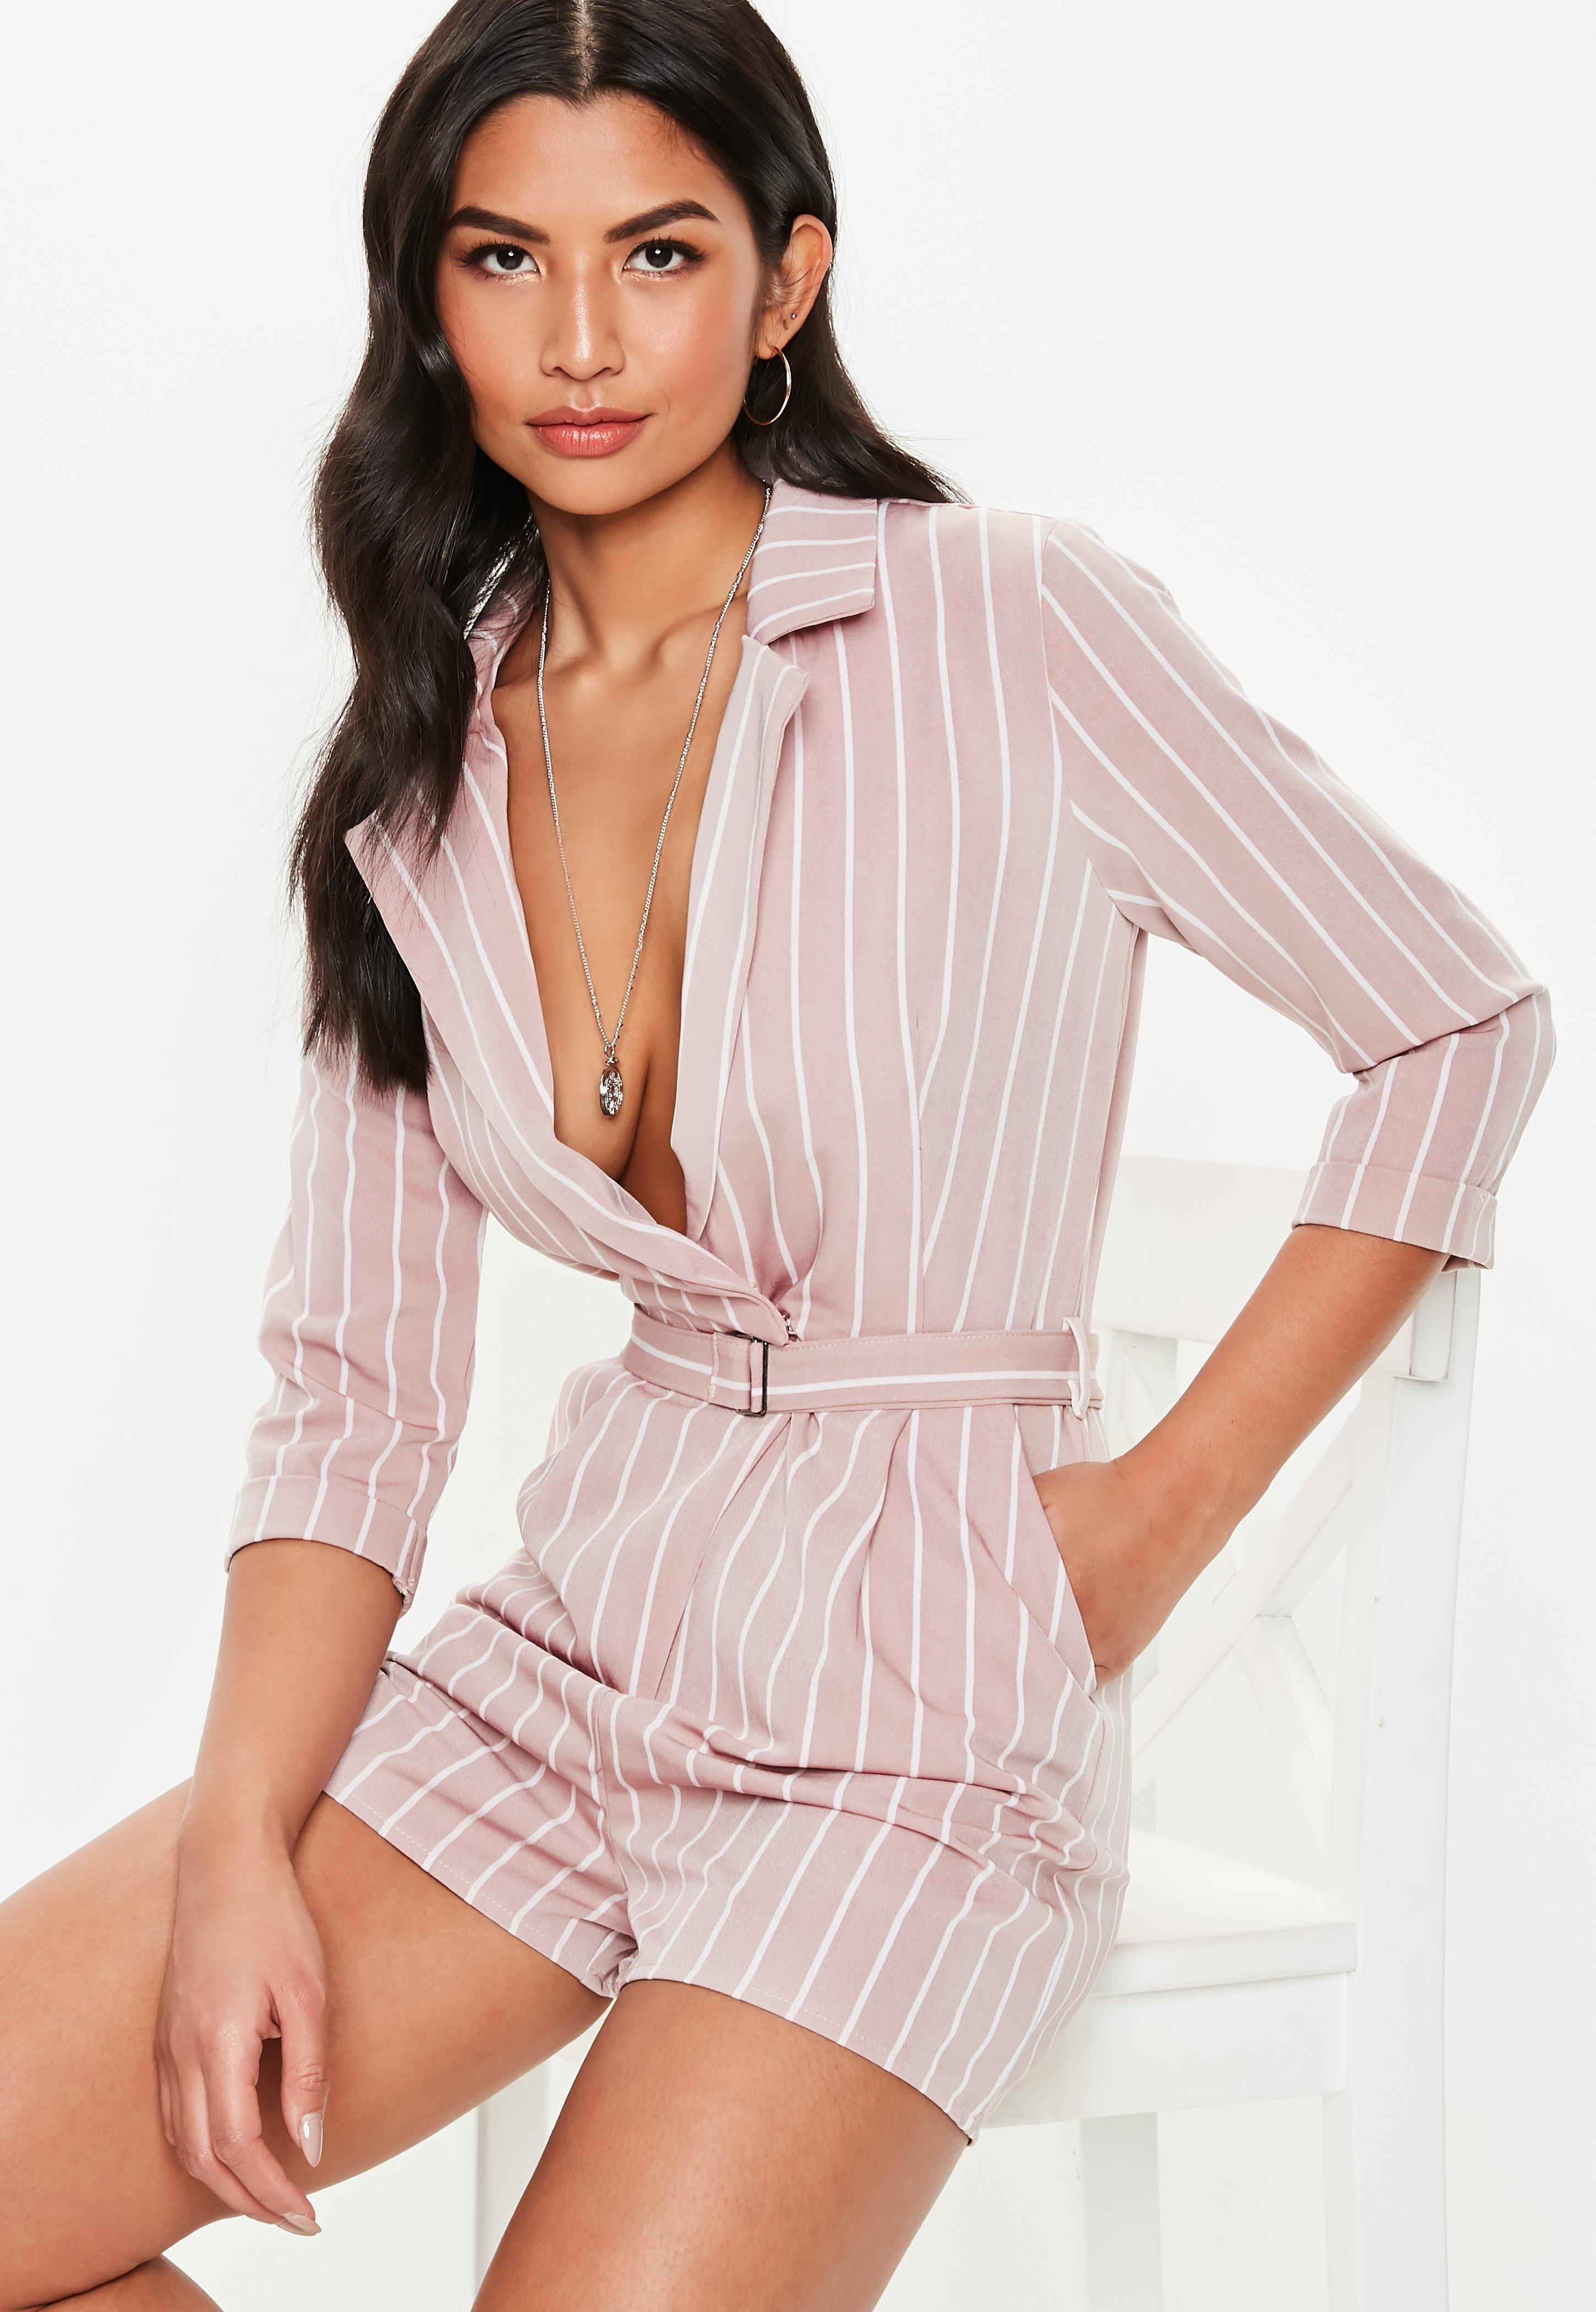 976d4b38c2a0 Long Sleeve Playsuits - Missguided